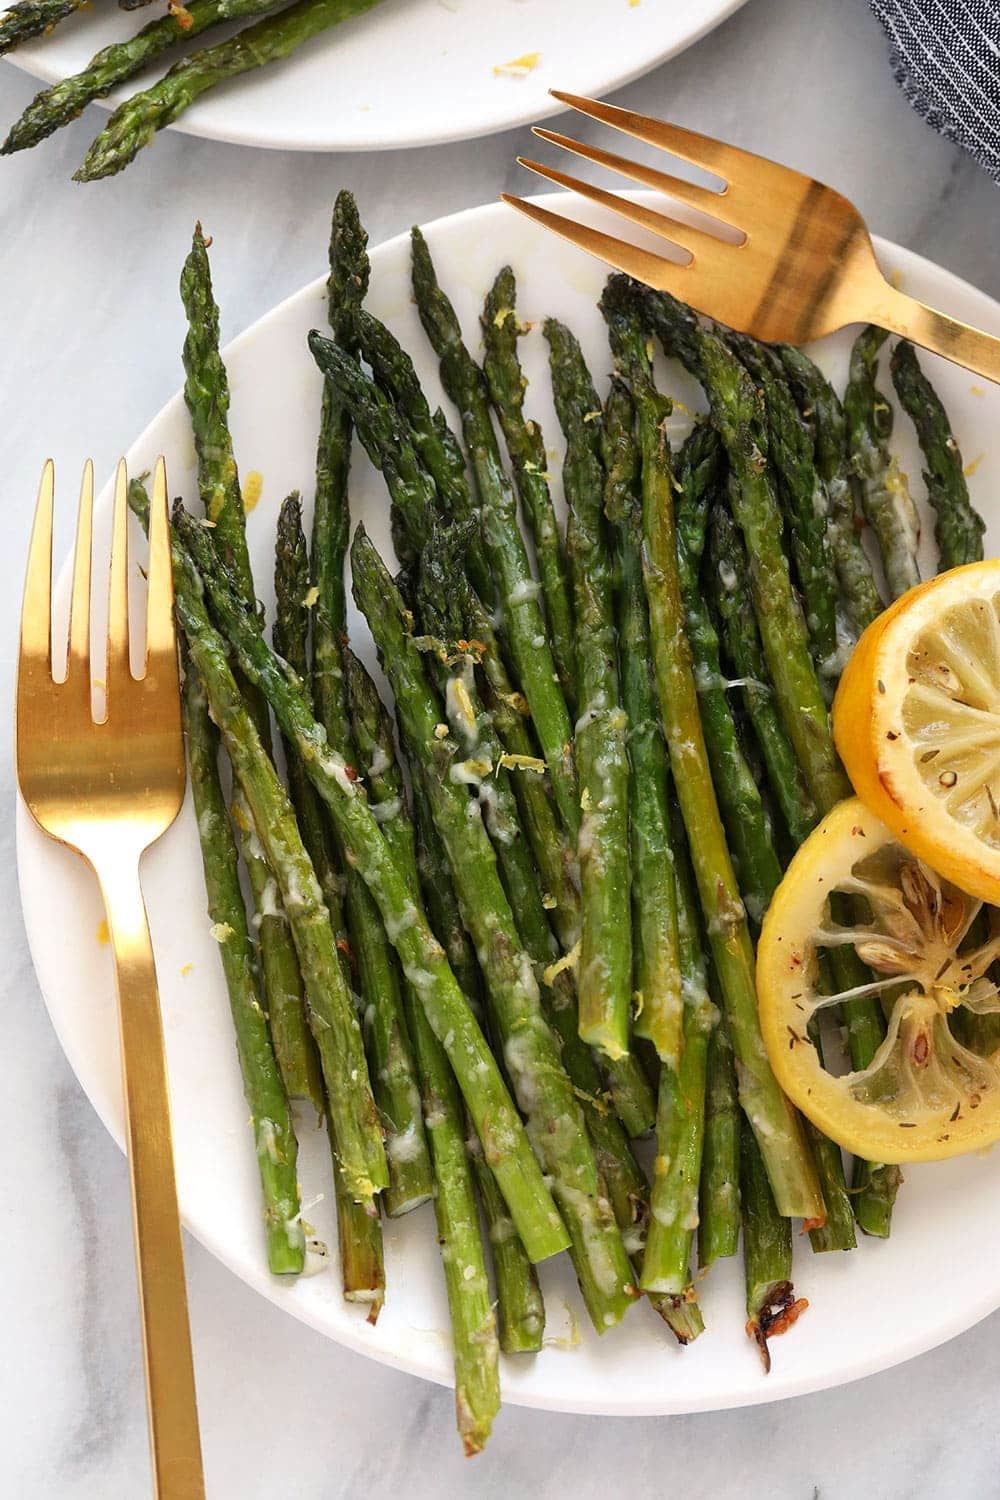 Oven roasted asparagus with parmesan cheese is the best way to eat asparagus! It's a healthy side dish recipe that's cooked to perfection.